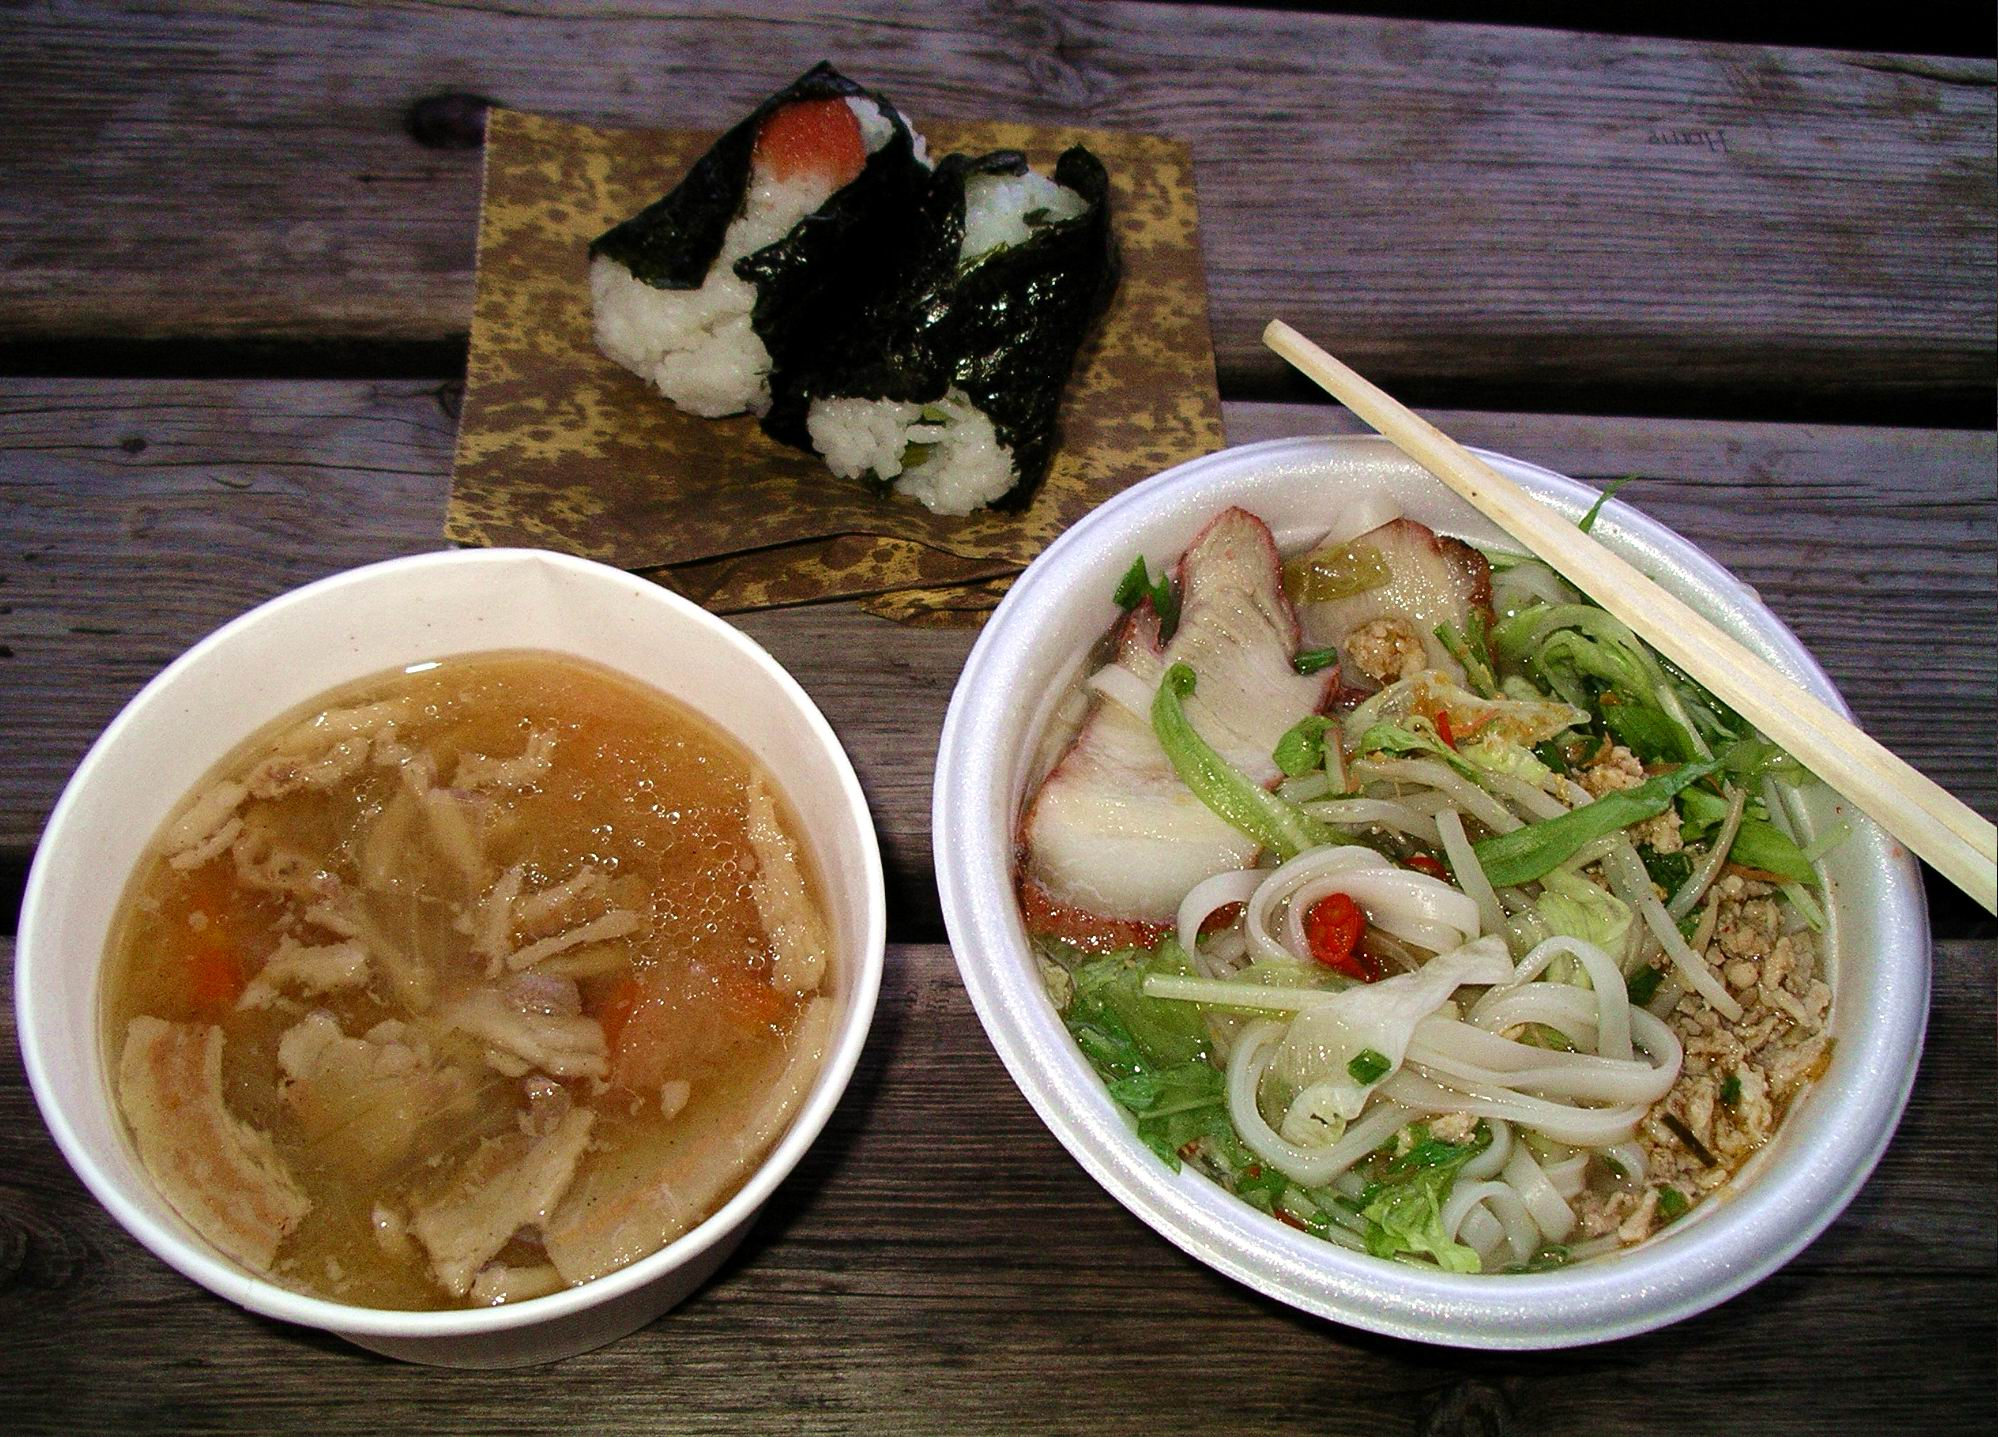 File:Pho with onigiri and tonjiru.jpg - Wikimedia Commons